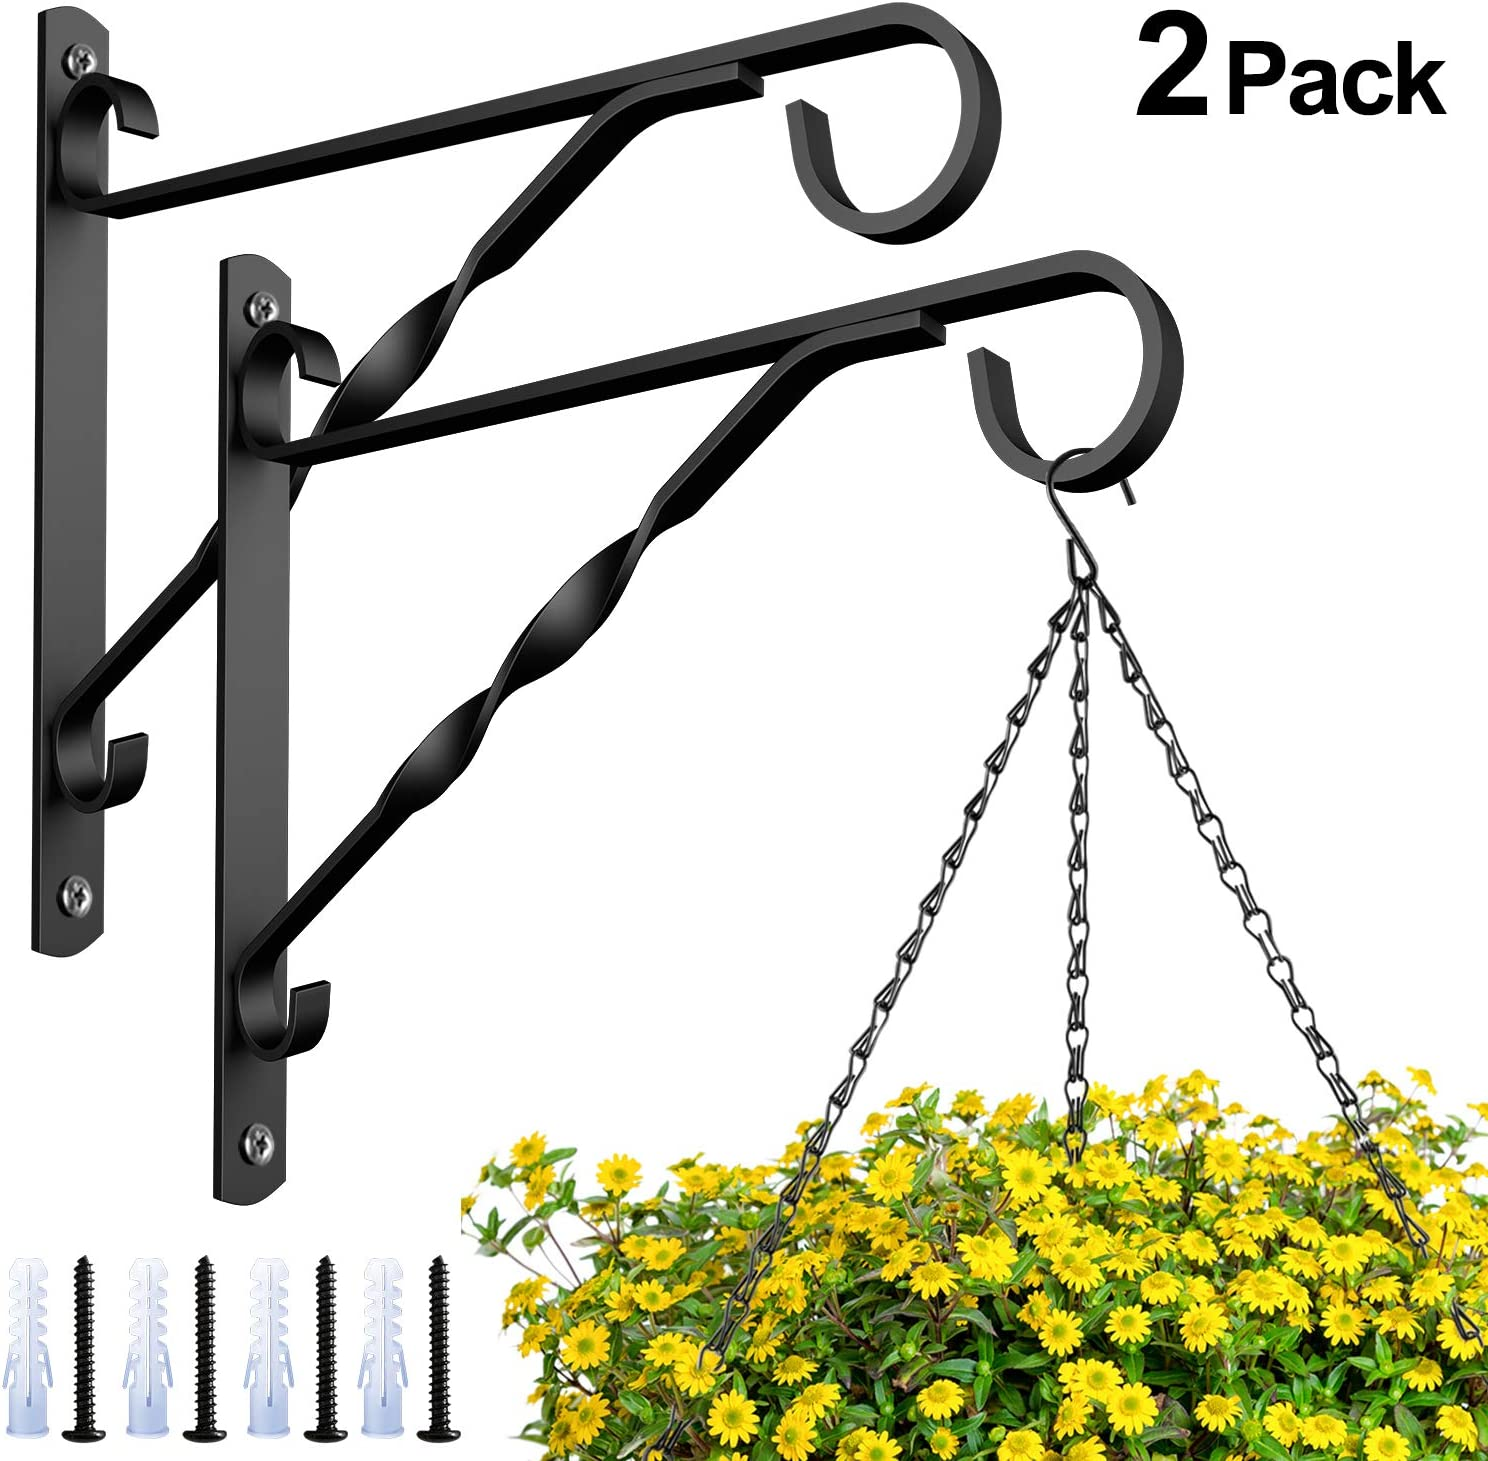 Amagabeli 2 Pack Hanging Plants Bracket 10'' Wall Planter Hook Flower Pot Bird Feeder Wind Chime Lanterns Hanger Patio Lawn Garden for Outdoor Indoor Shelf Fence Screw Mount Against Door Arm Black